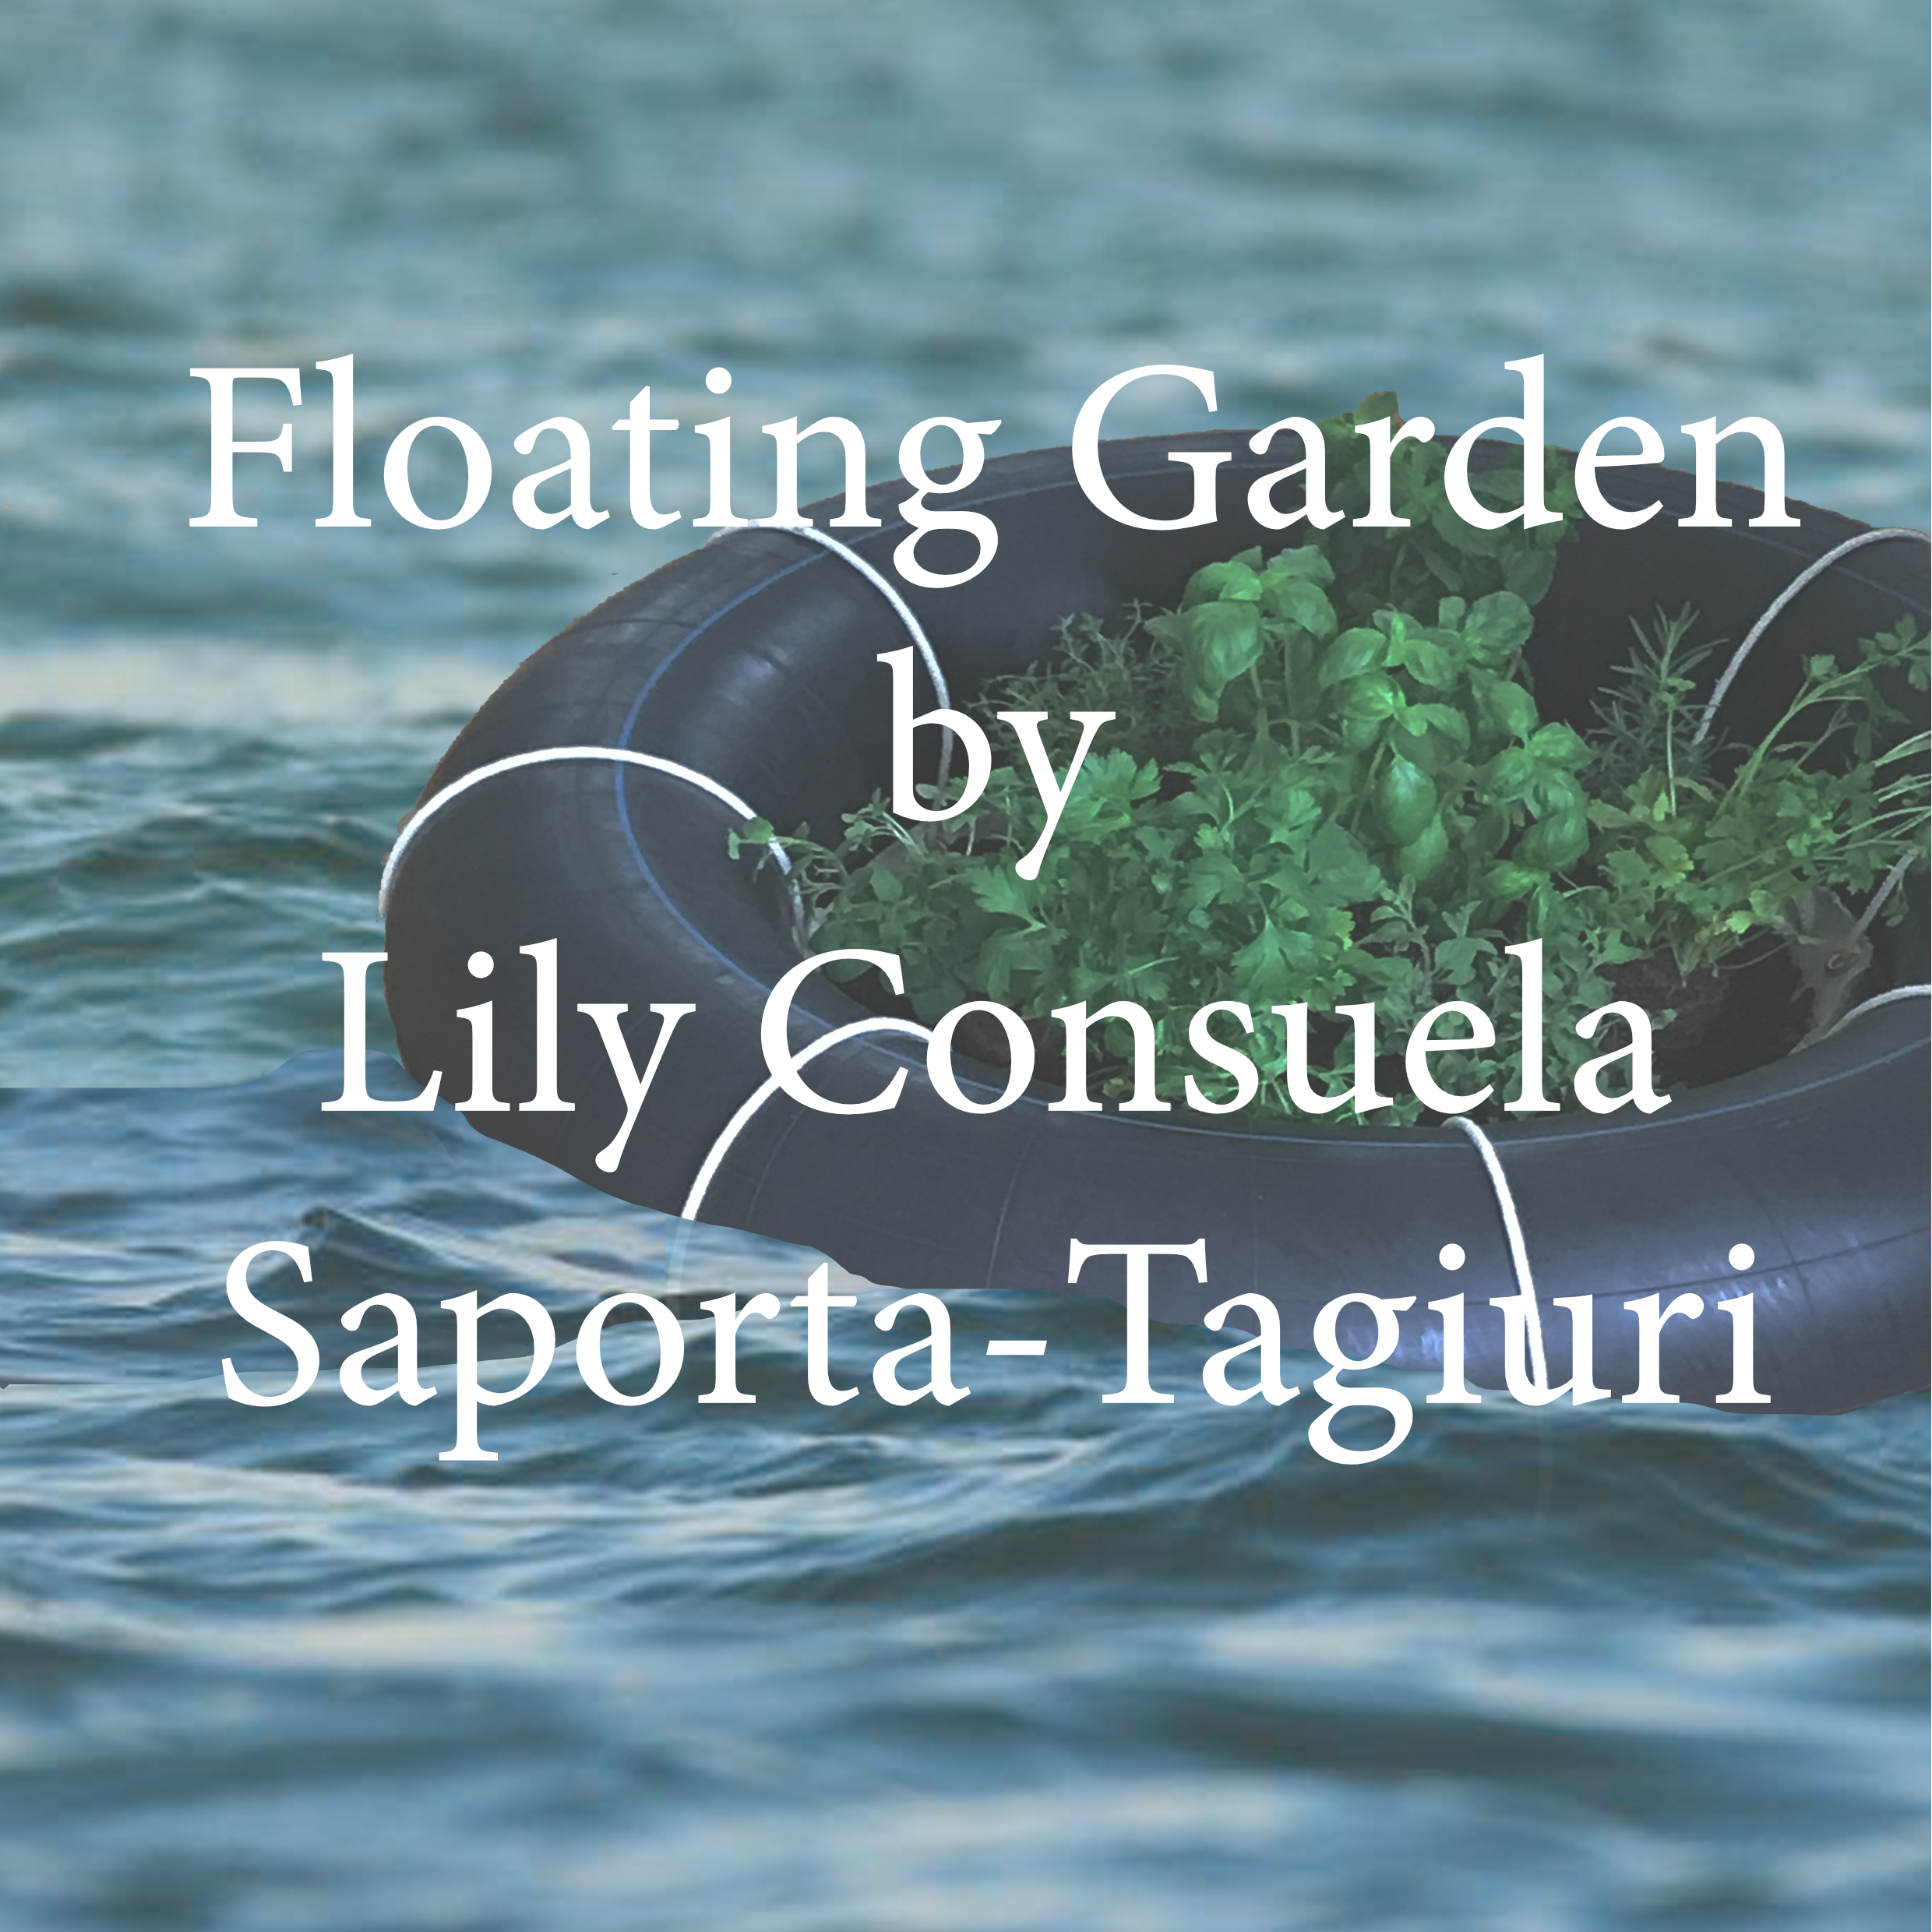 Tagiuri Floating garden.jpg